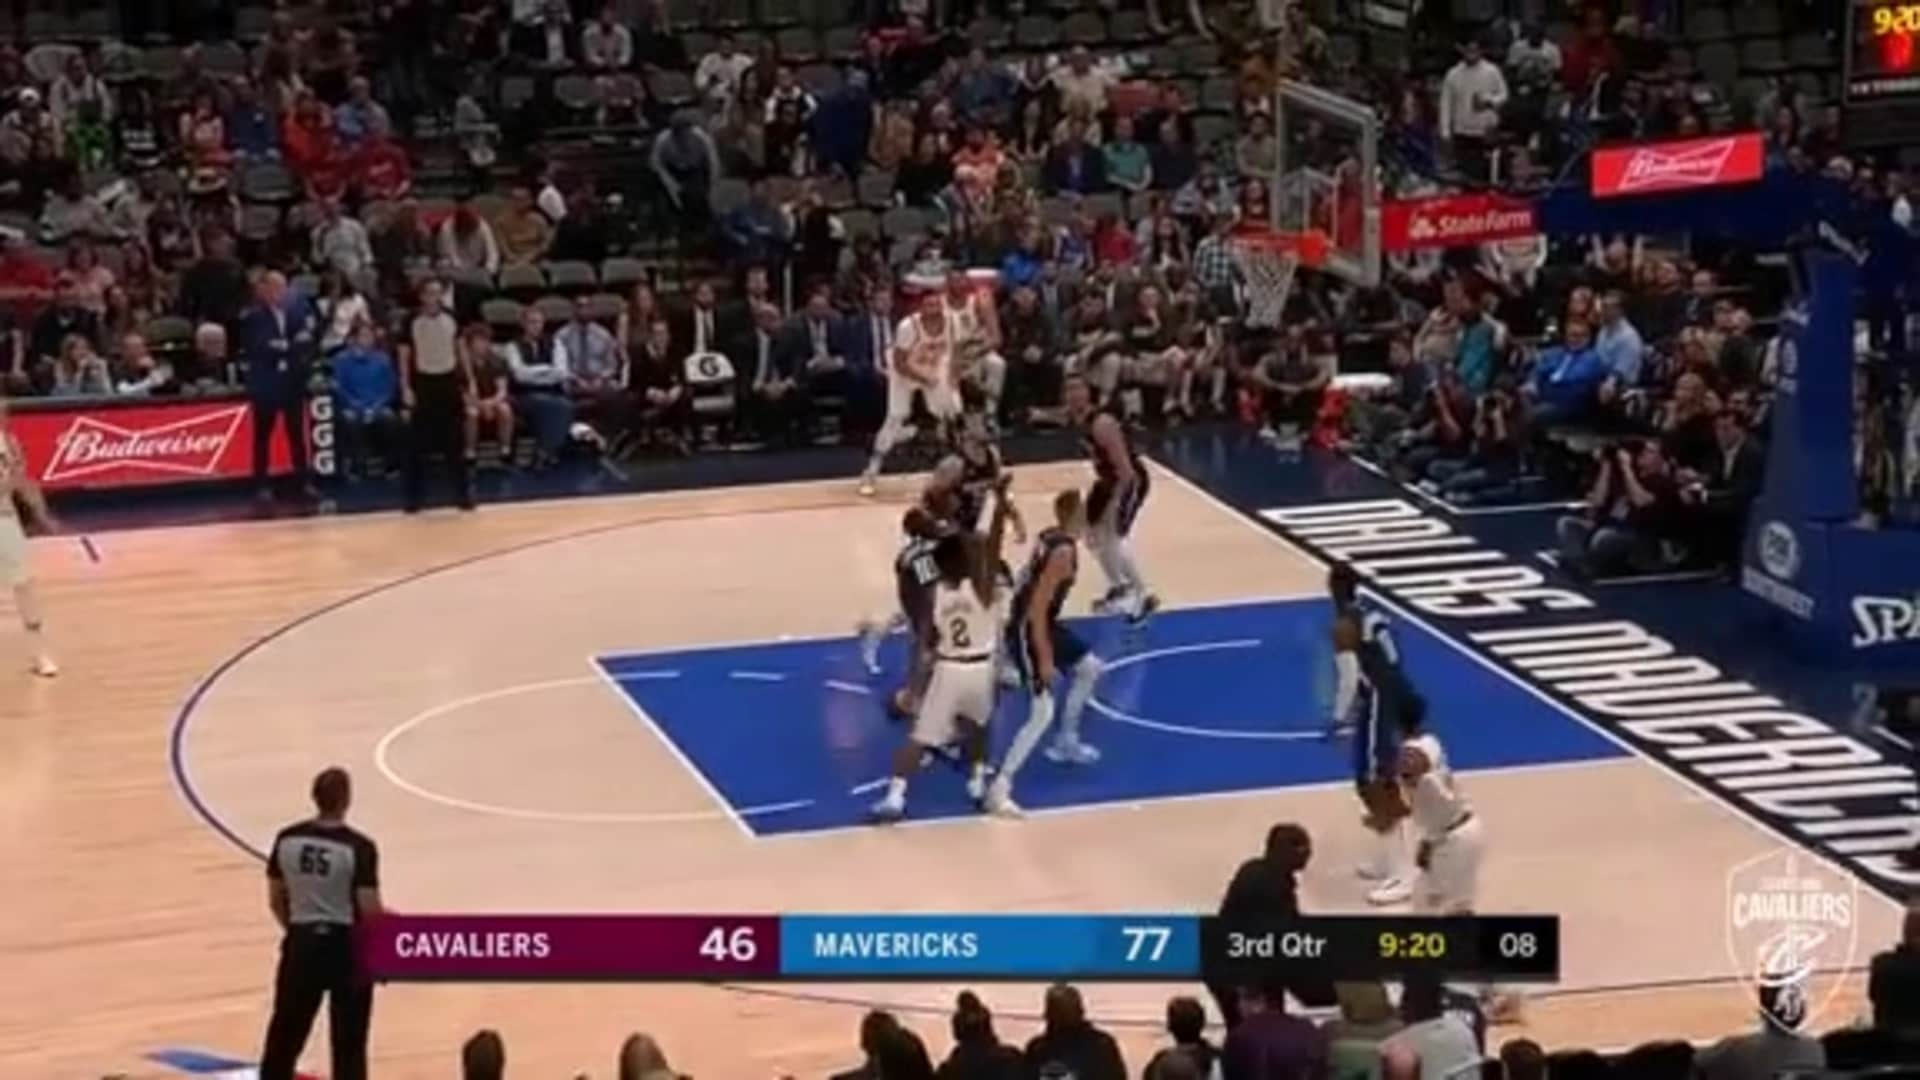 Sexton Steps Up and Scores the Floater